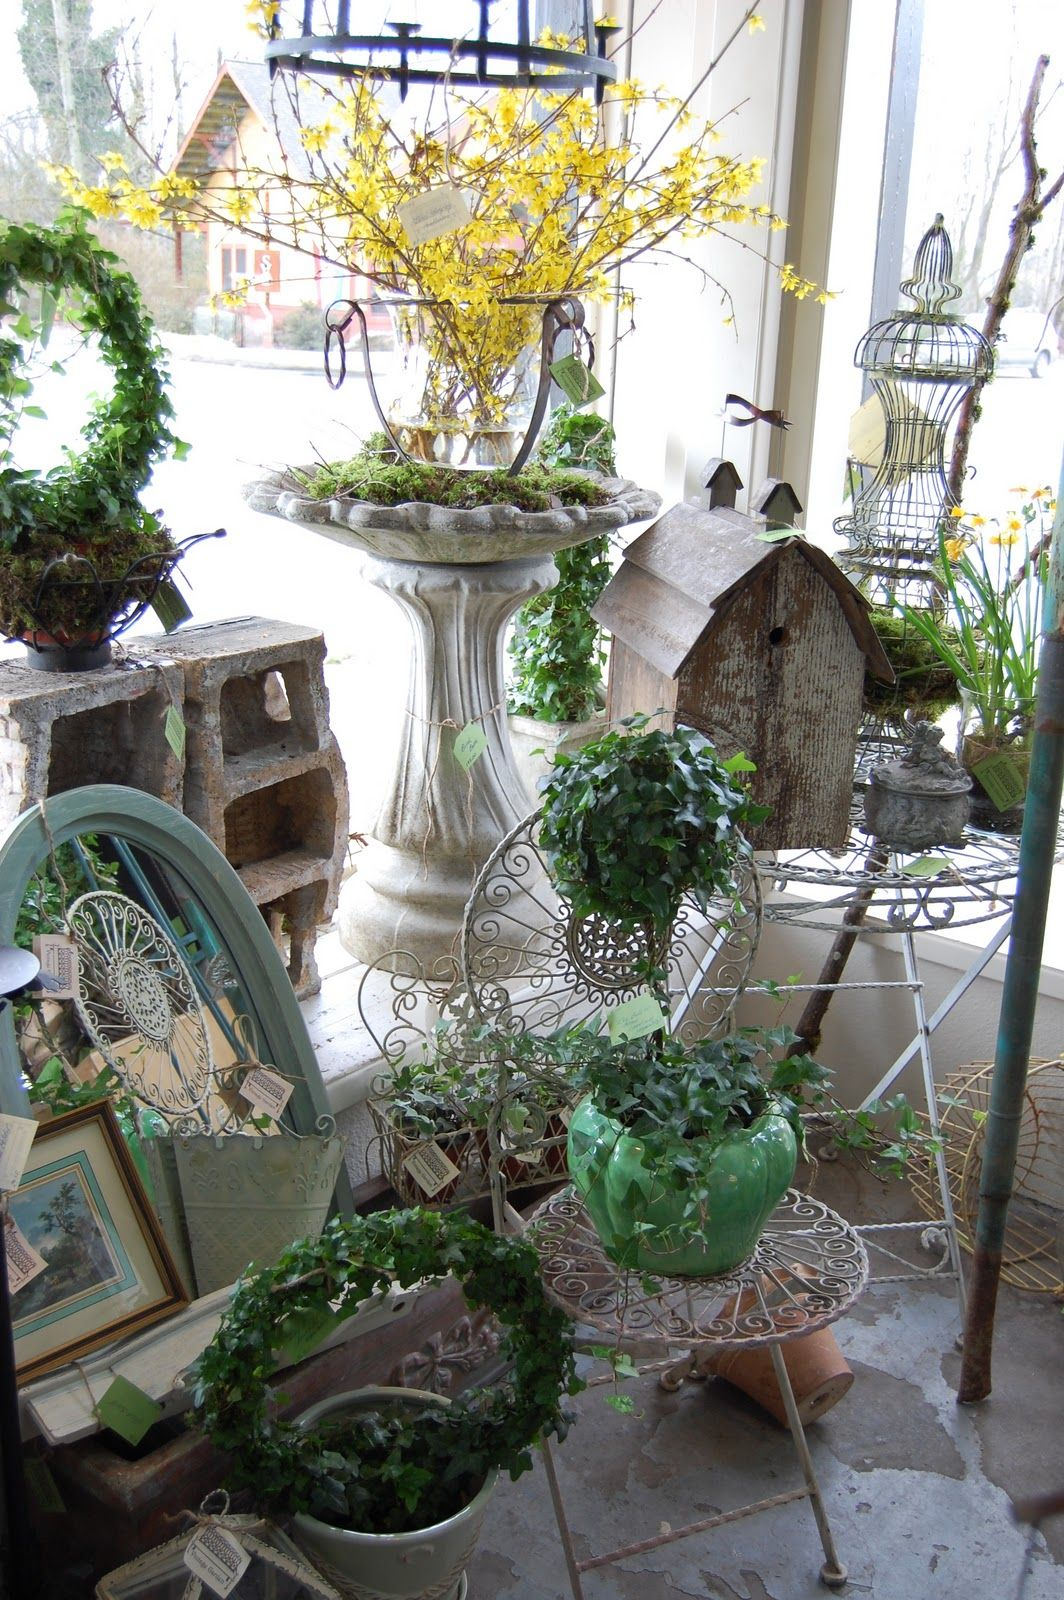 I am really liking the use of plants and greenery in ...